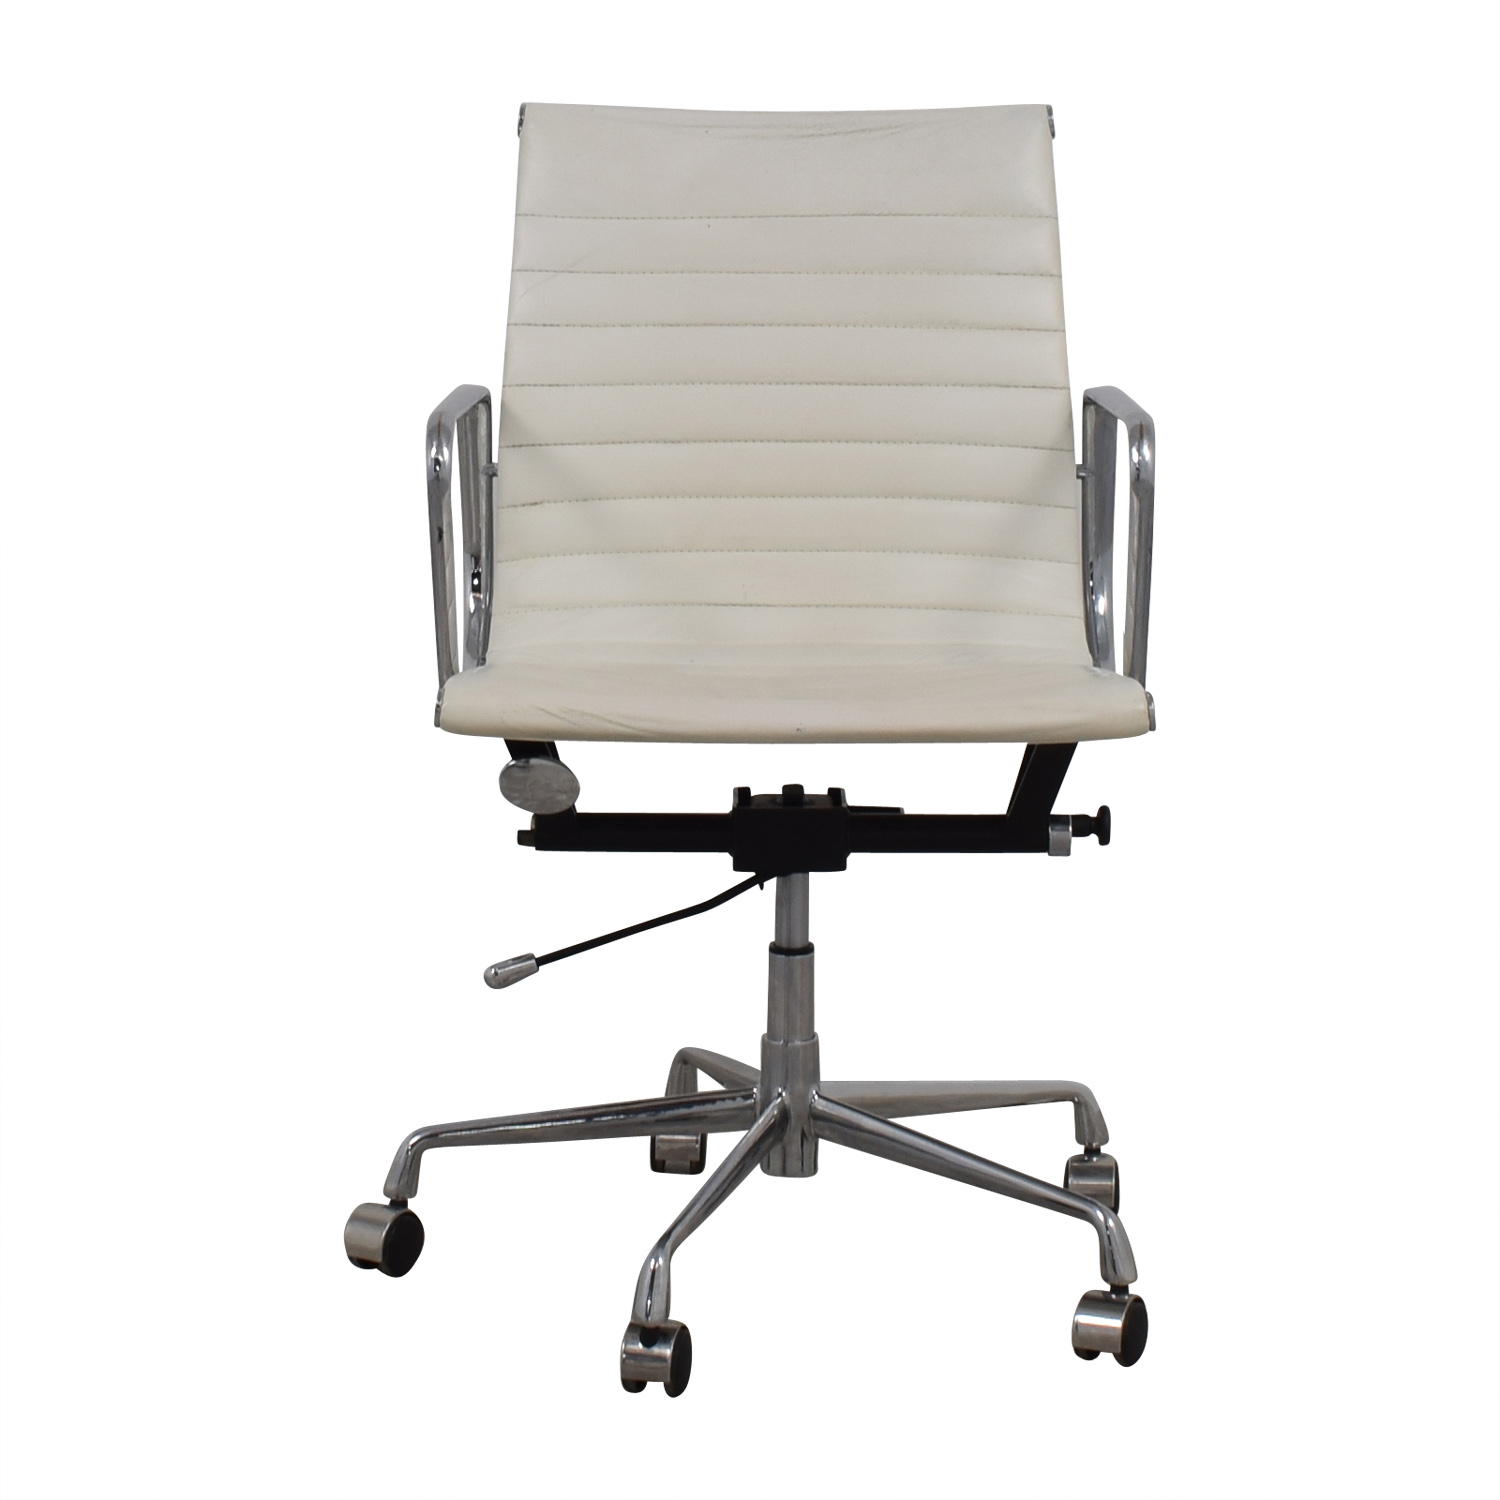 45 OFF Black Desk Chair Chairs